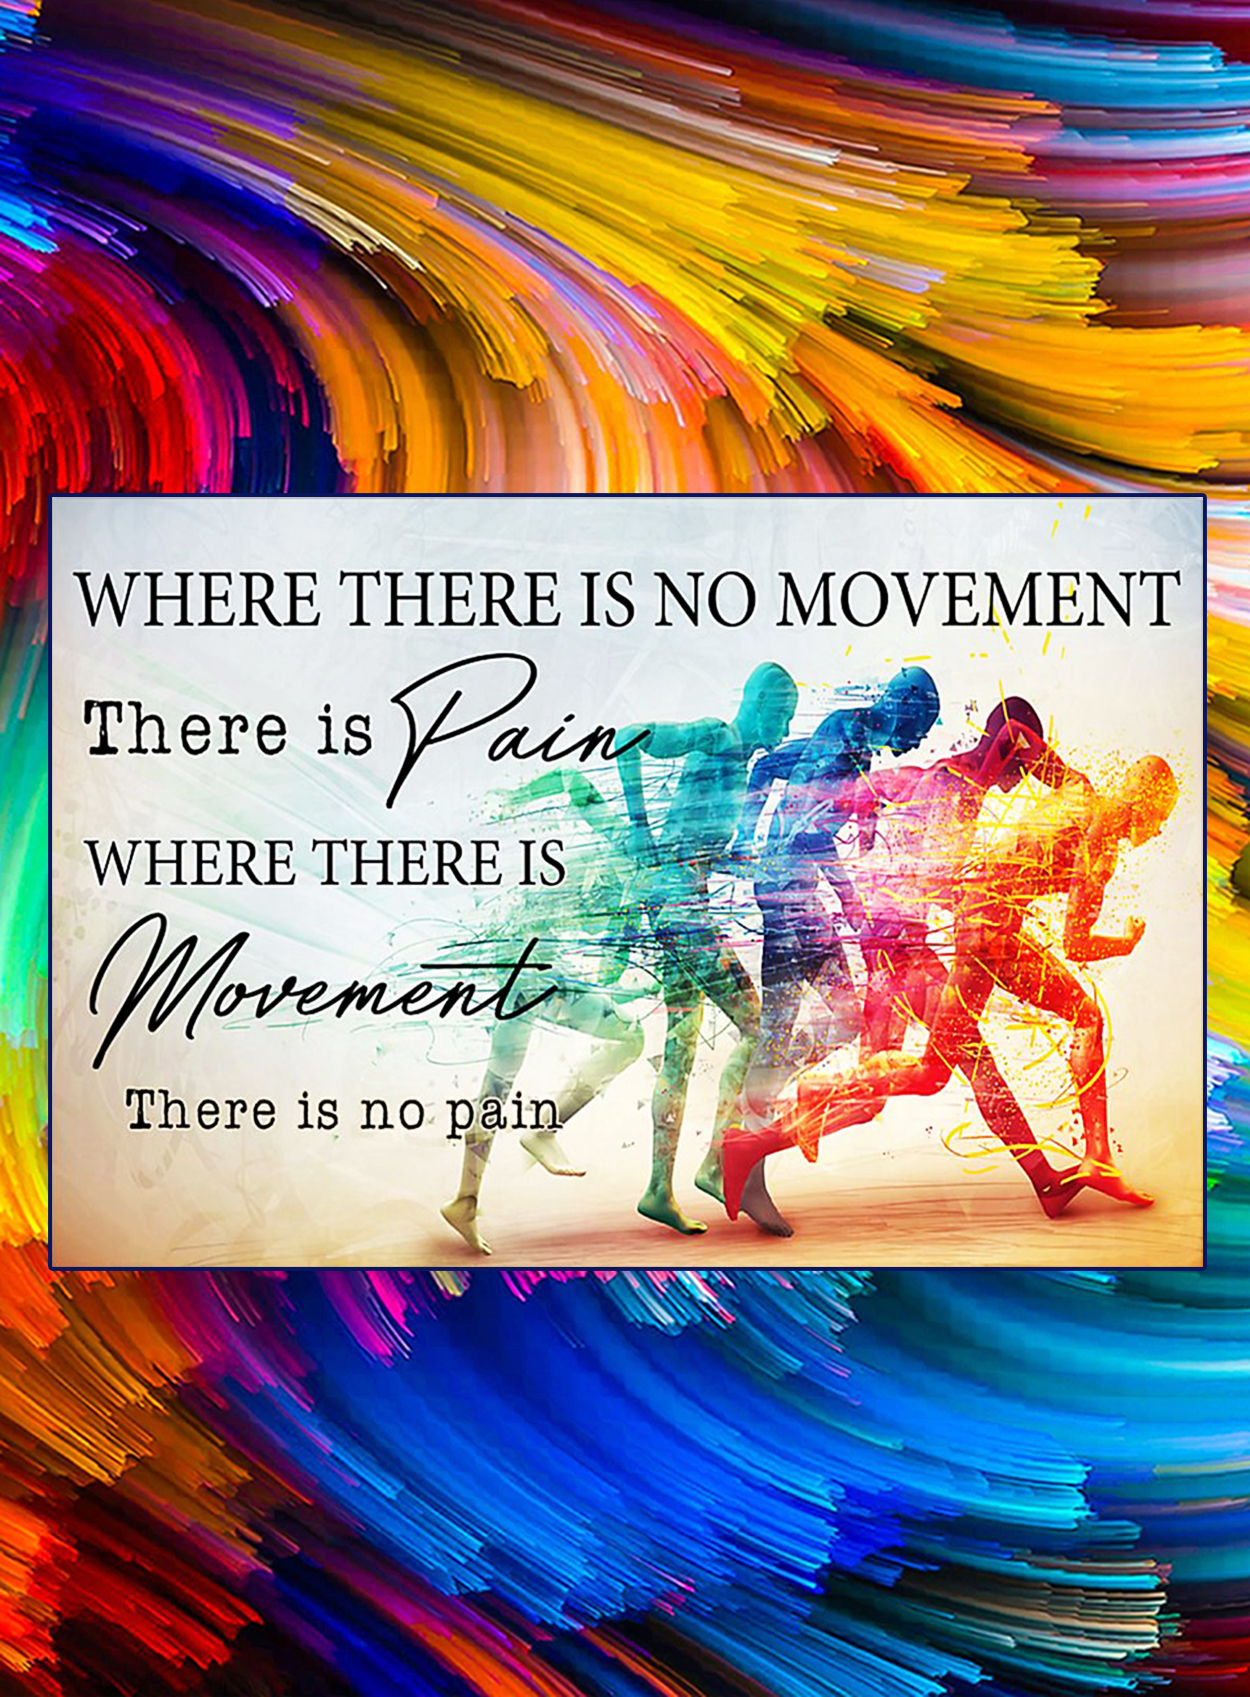 Where there is no movement there is pain where there is movement there is no pain poster - A2